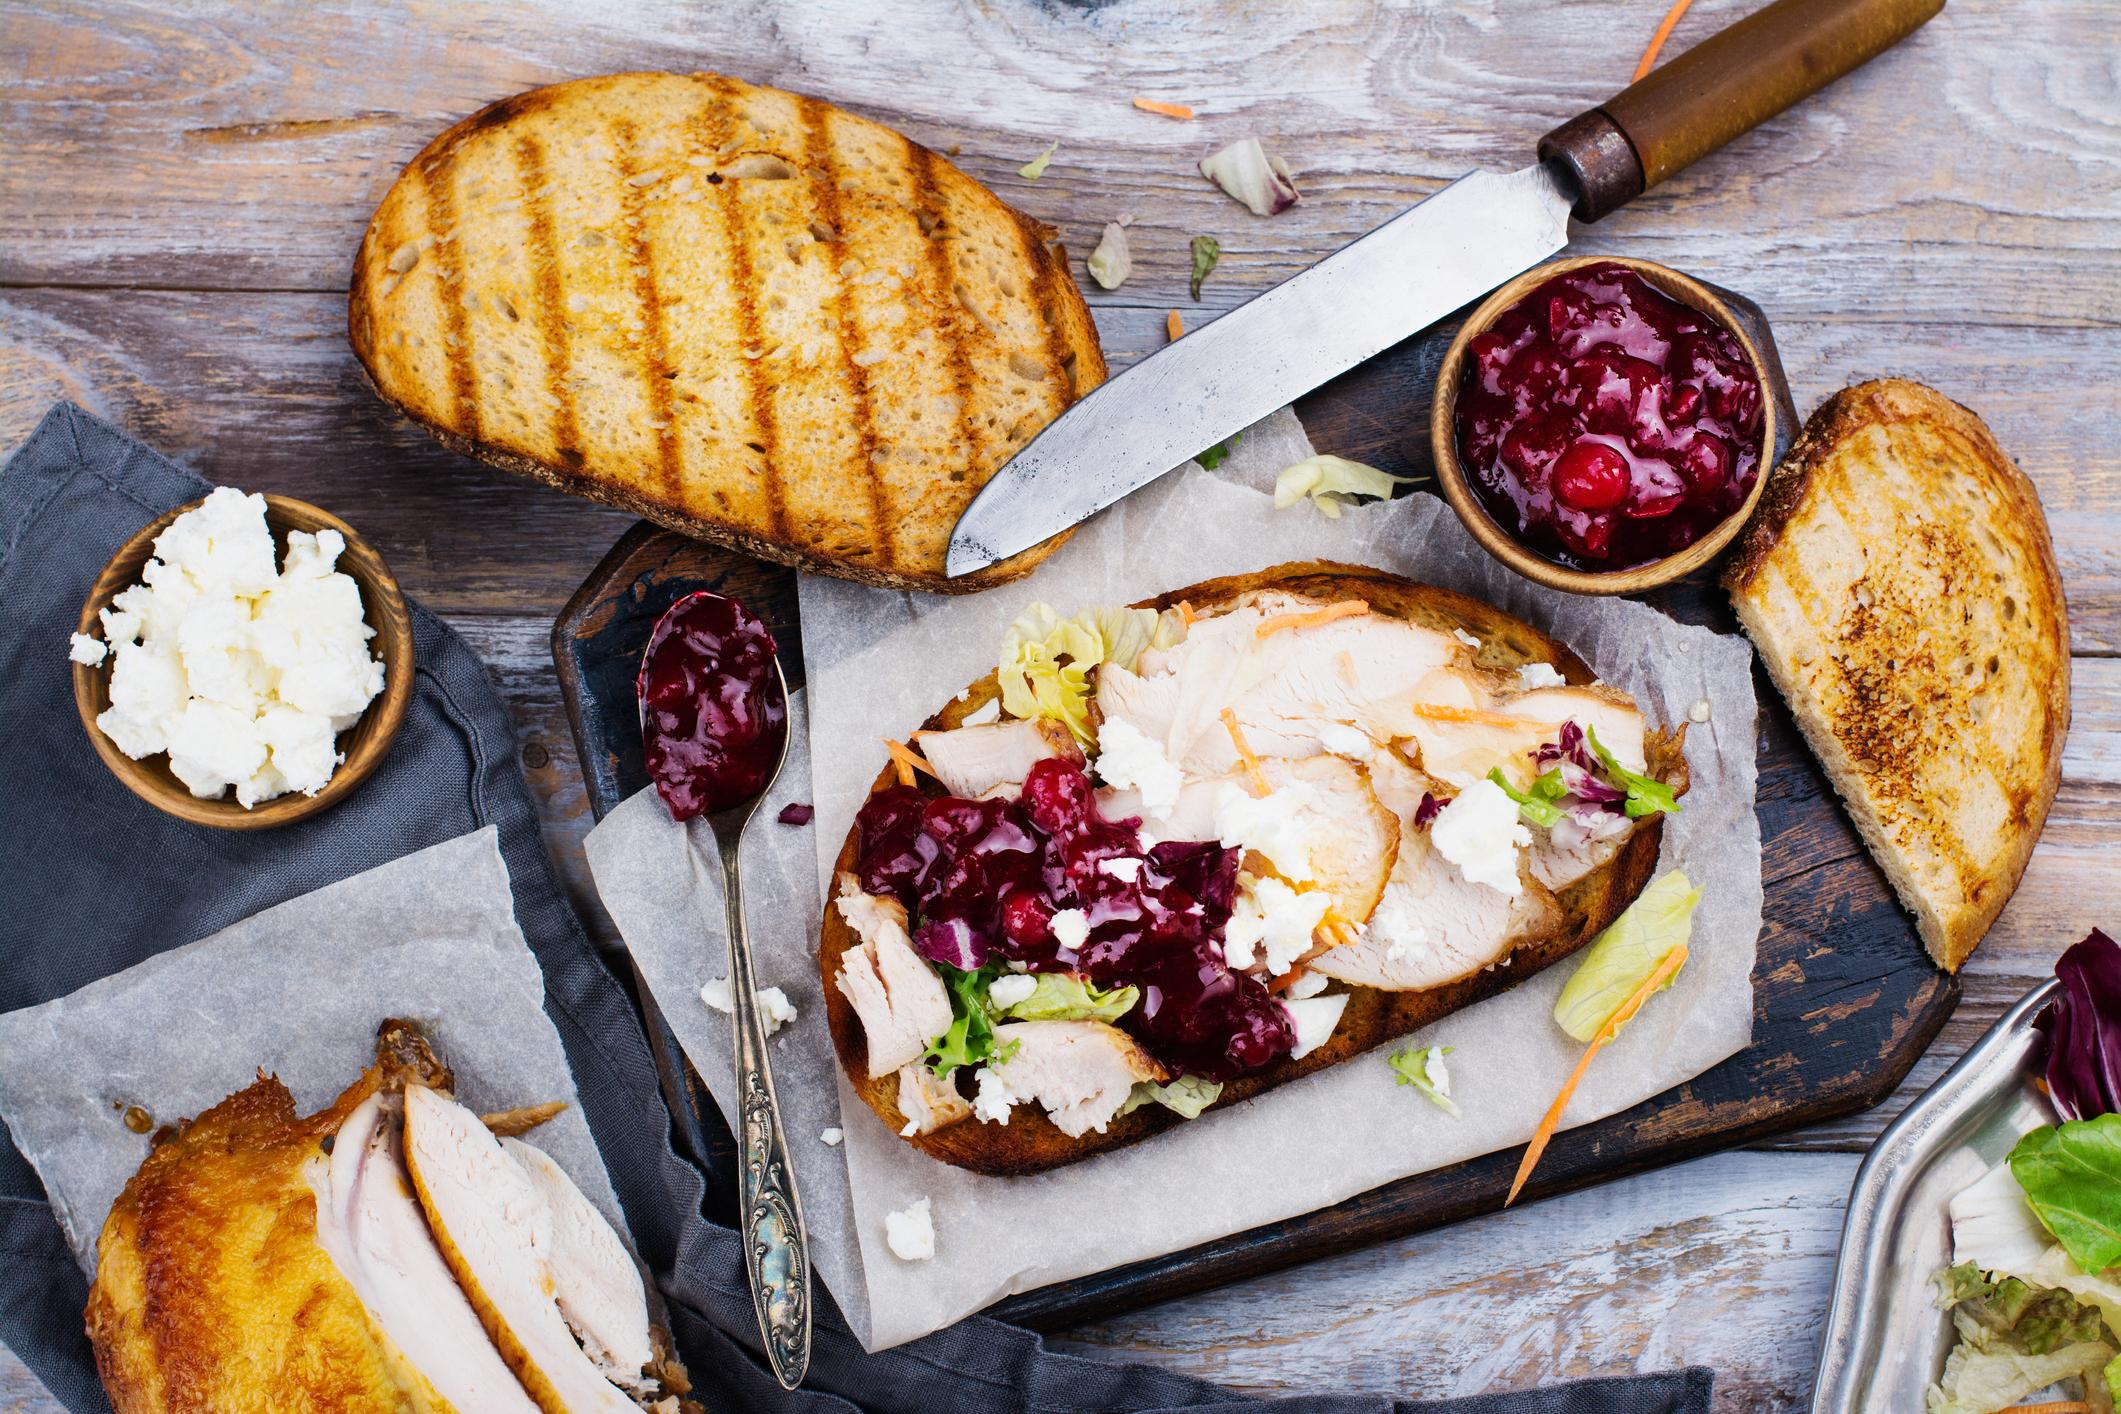 Homemade turkey leftover sandwich with cranberry sauce. Credit: Happy Lark.